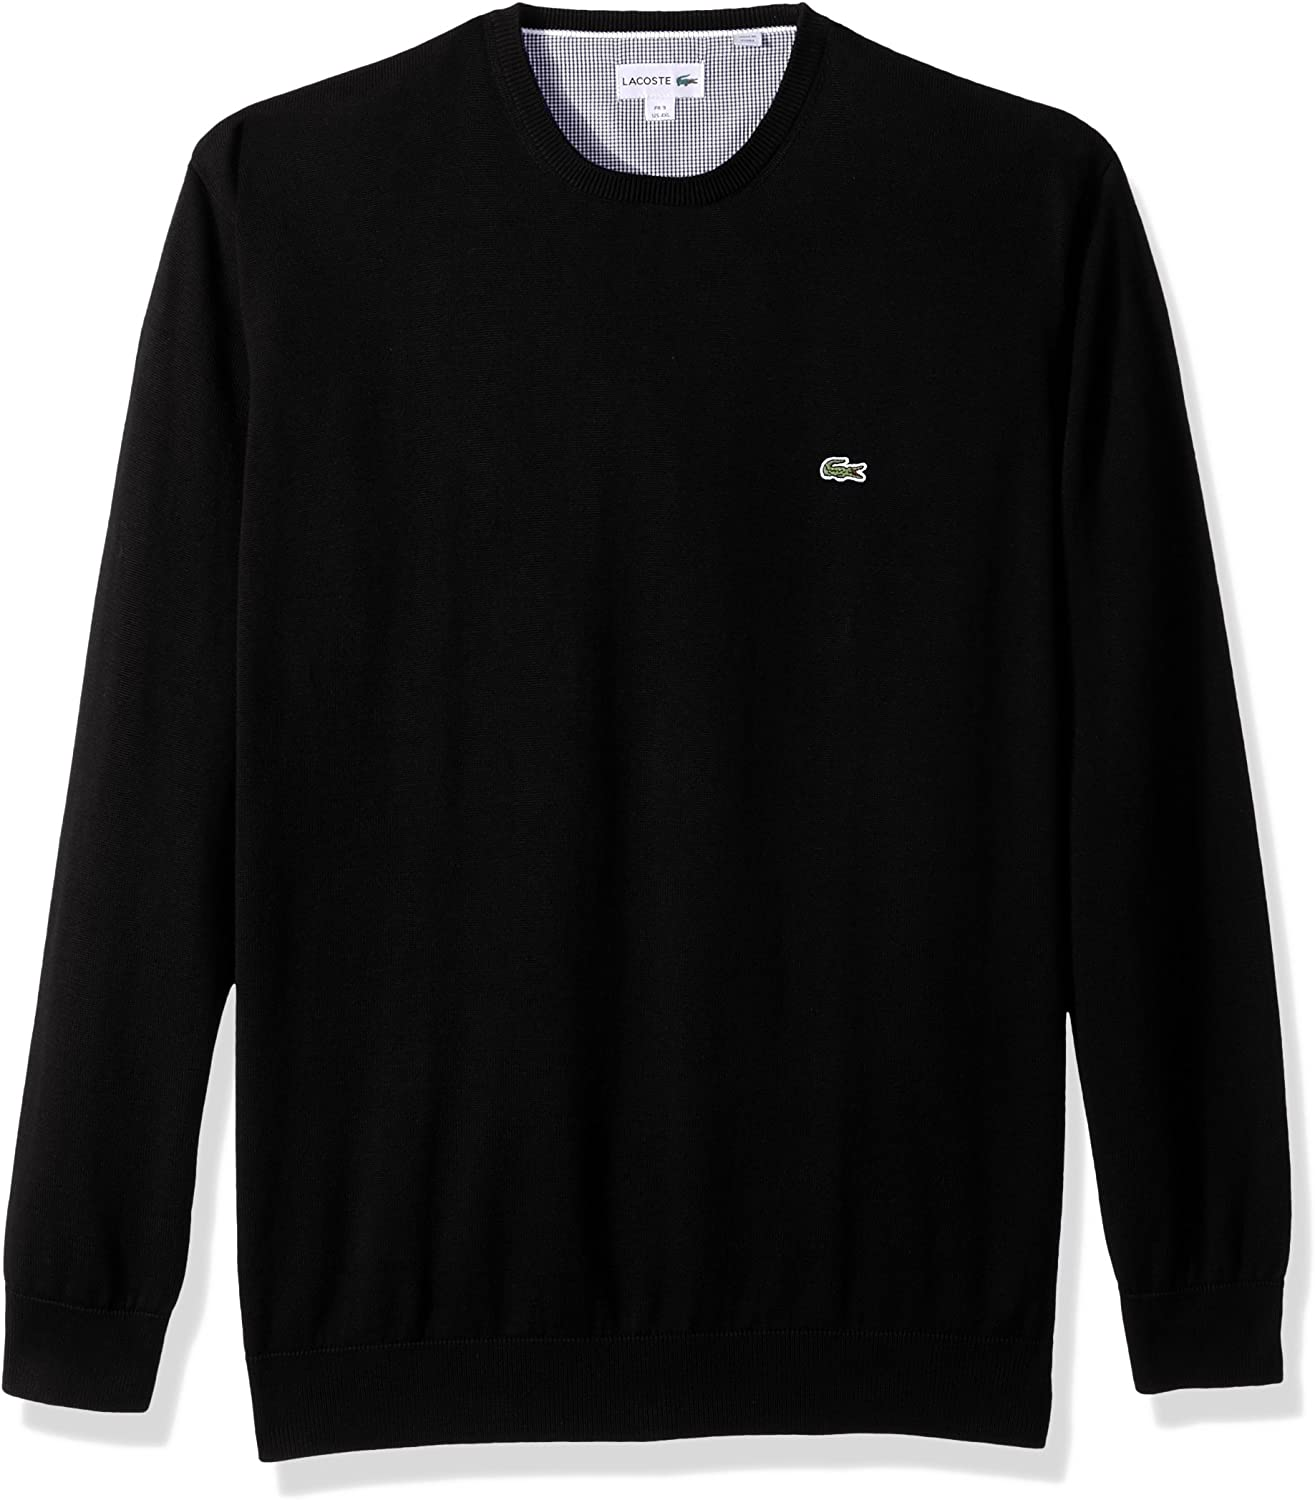 Lacoste Mens Crewneck Cotton Jersey Sweater with Green Croc